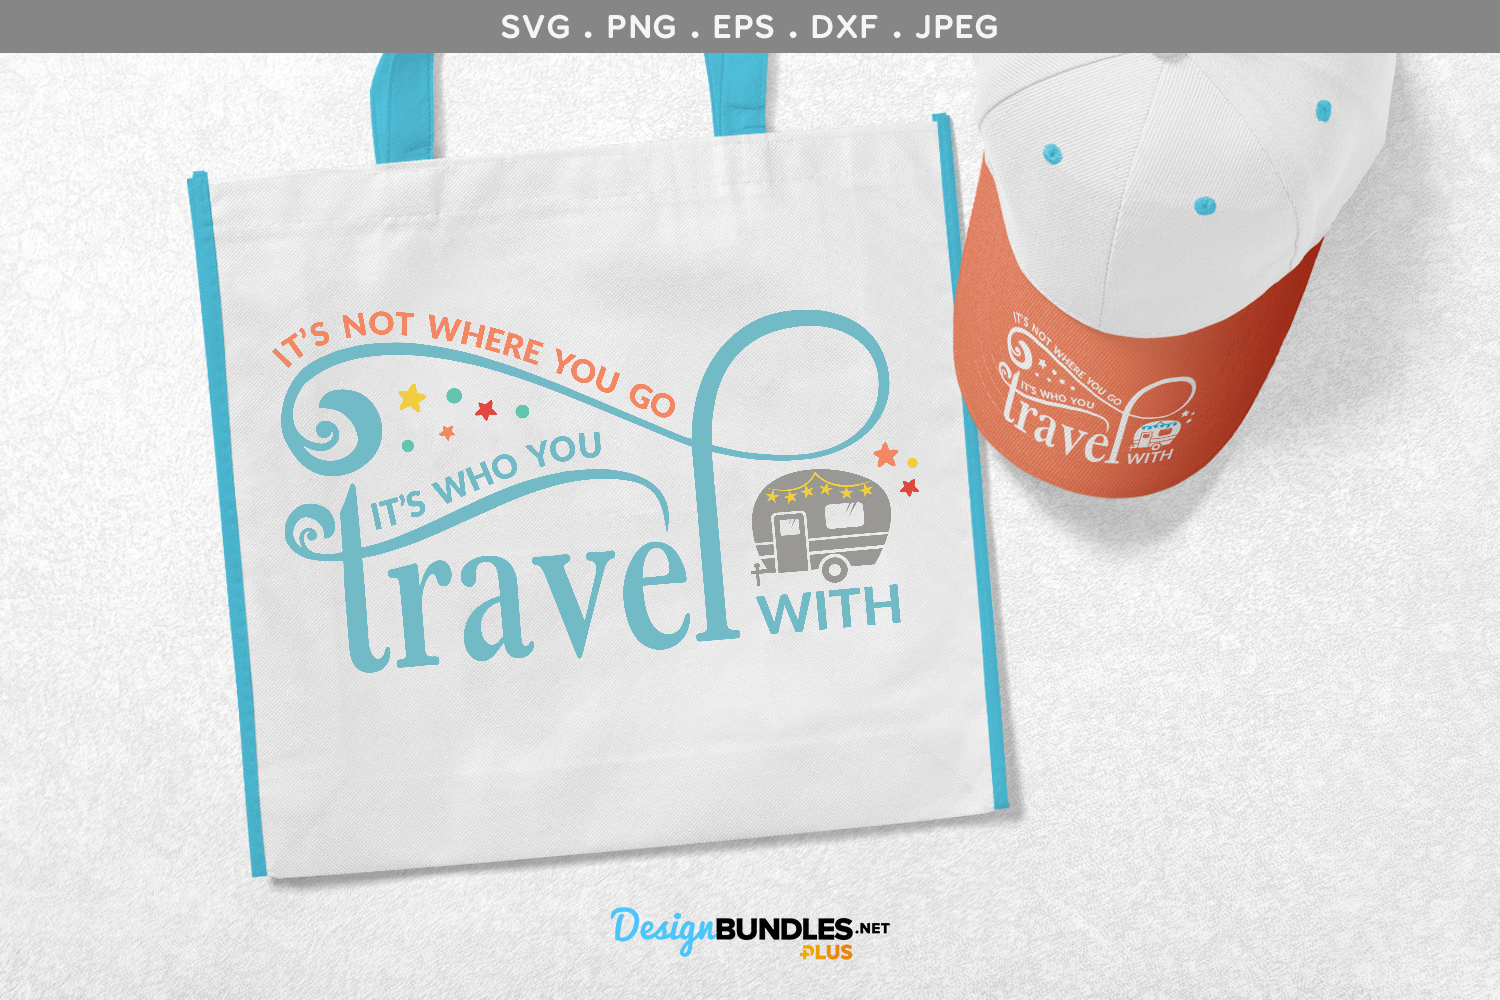 It's Not Where You Go, it's Who You Travel With - svg design example image 1